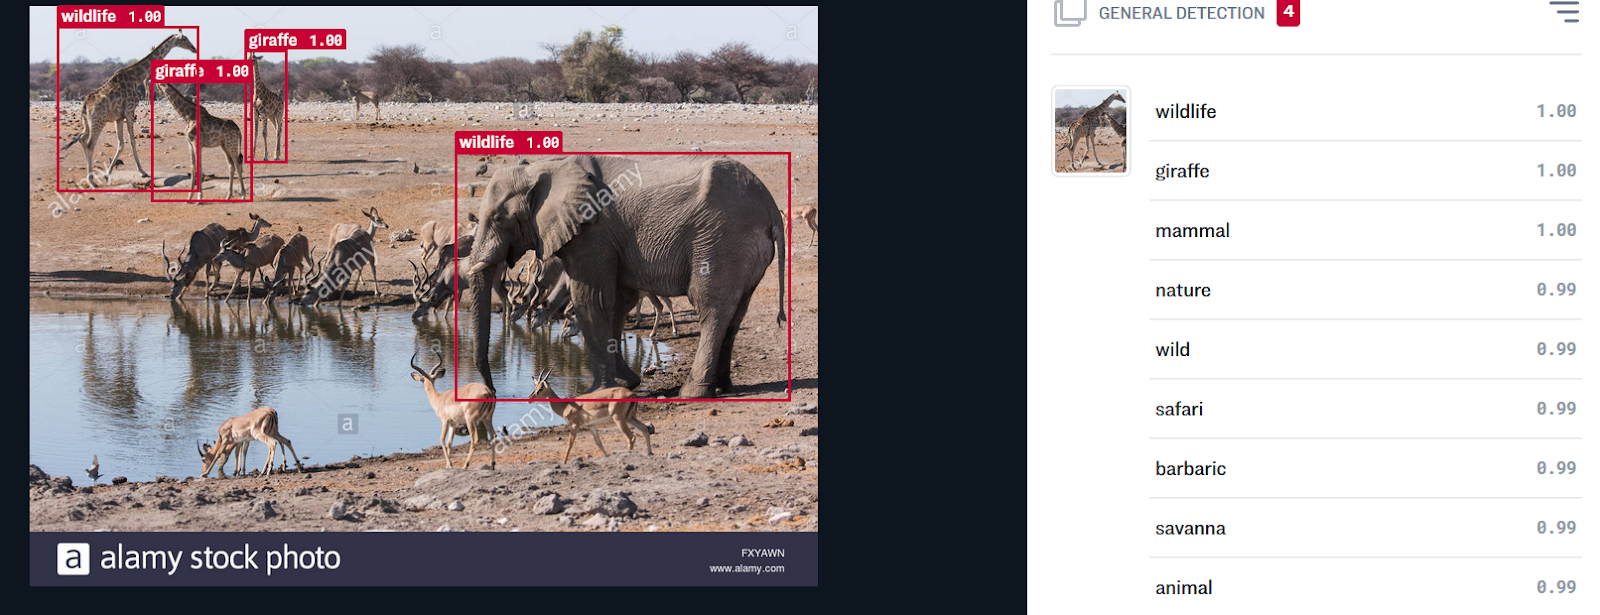 AI-Compare (www.ai-compare.com) — Object Detection API of Clarifai